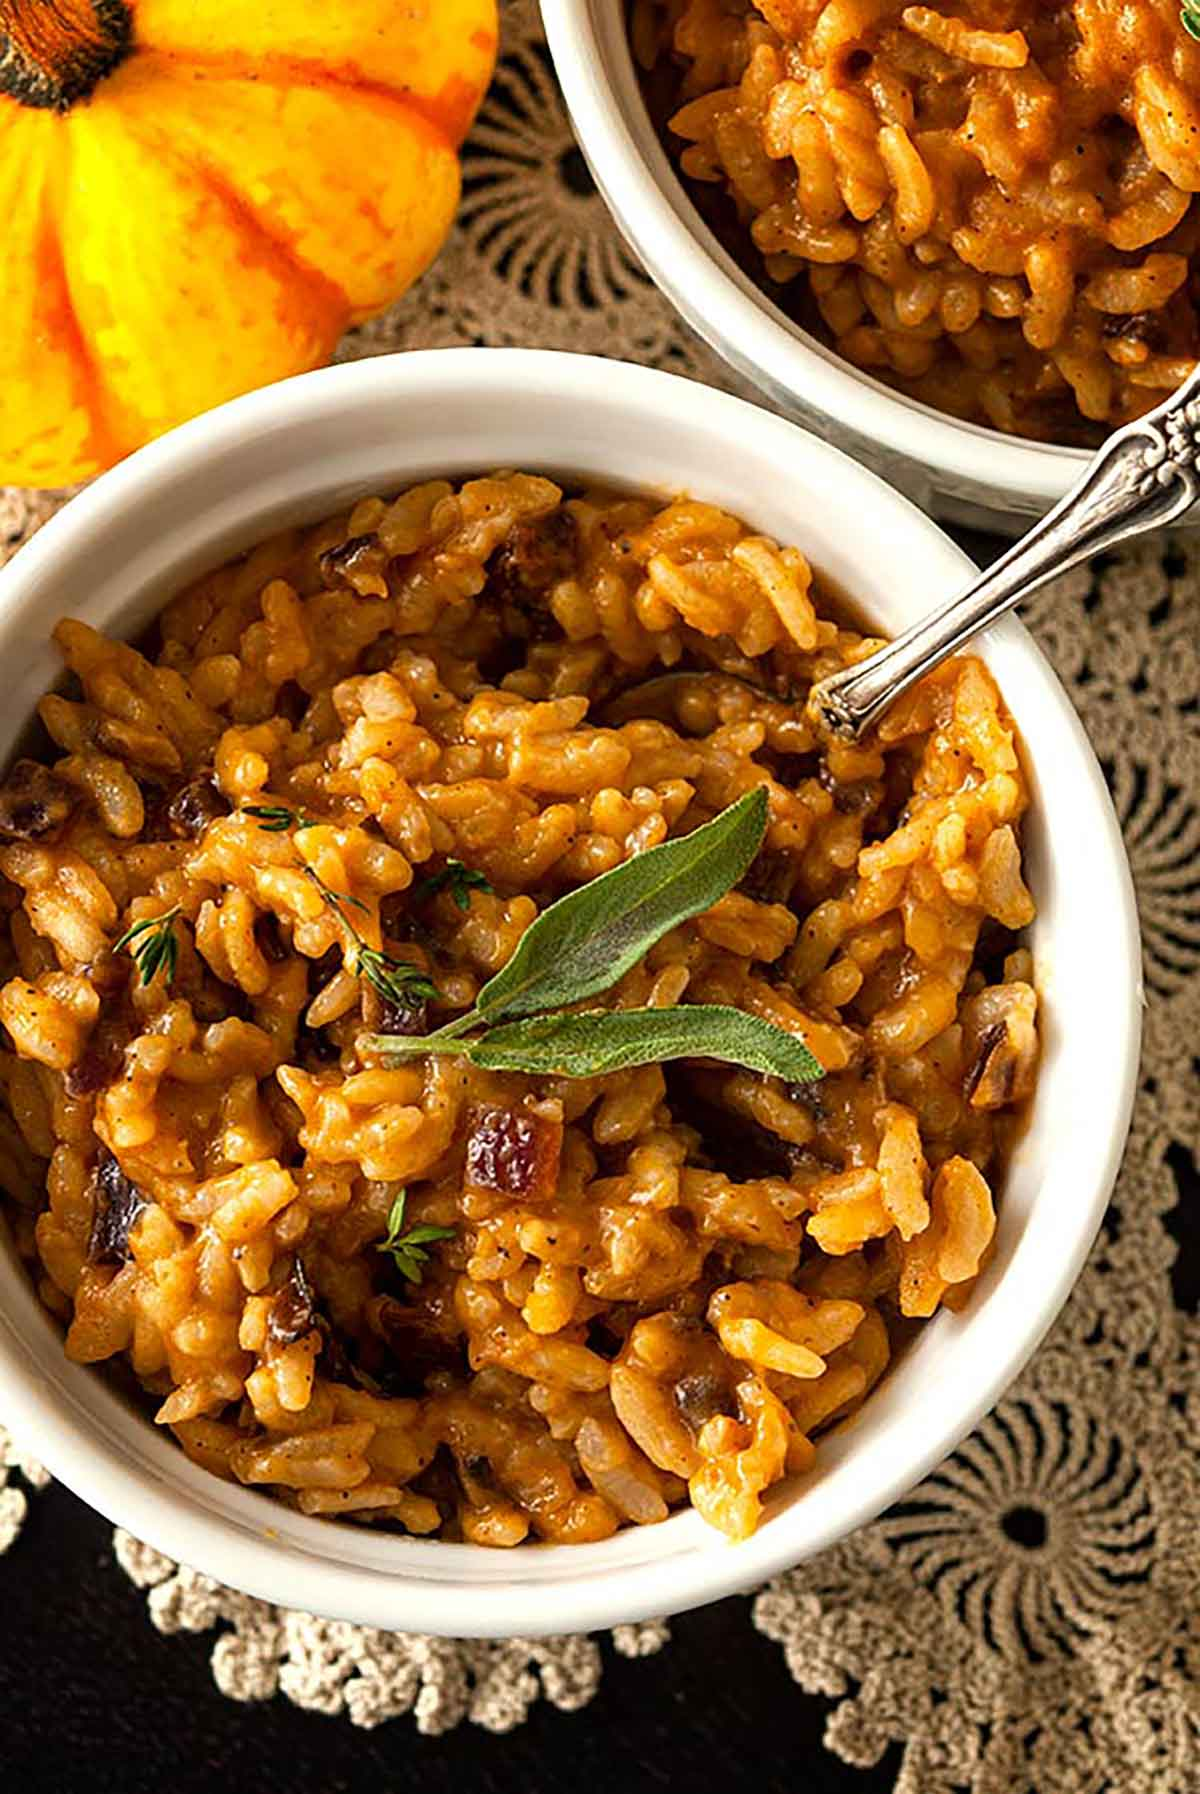 A bowl of pumpkin risotto, garnished with 2 sage leaves, on a lace table cloth beside another bowl and small pumpkin.